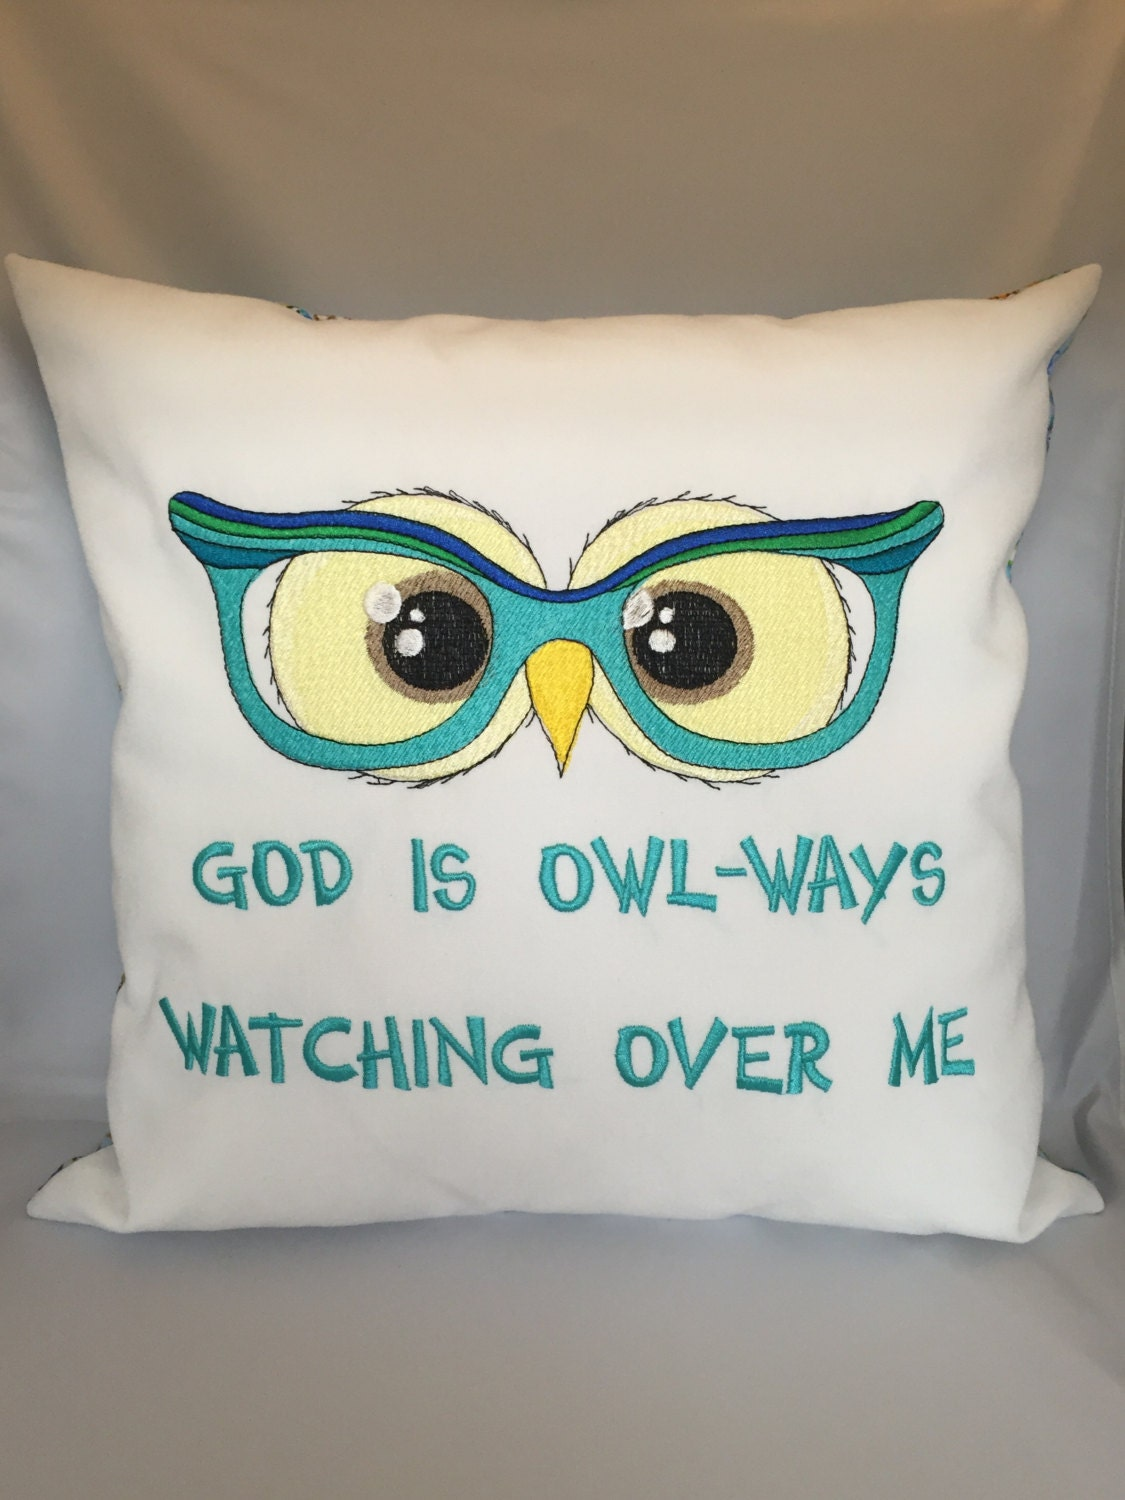 Owl Throw Pillow Etsy : Owl-ways Throw Pillow